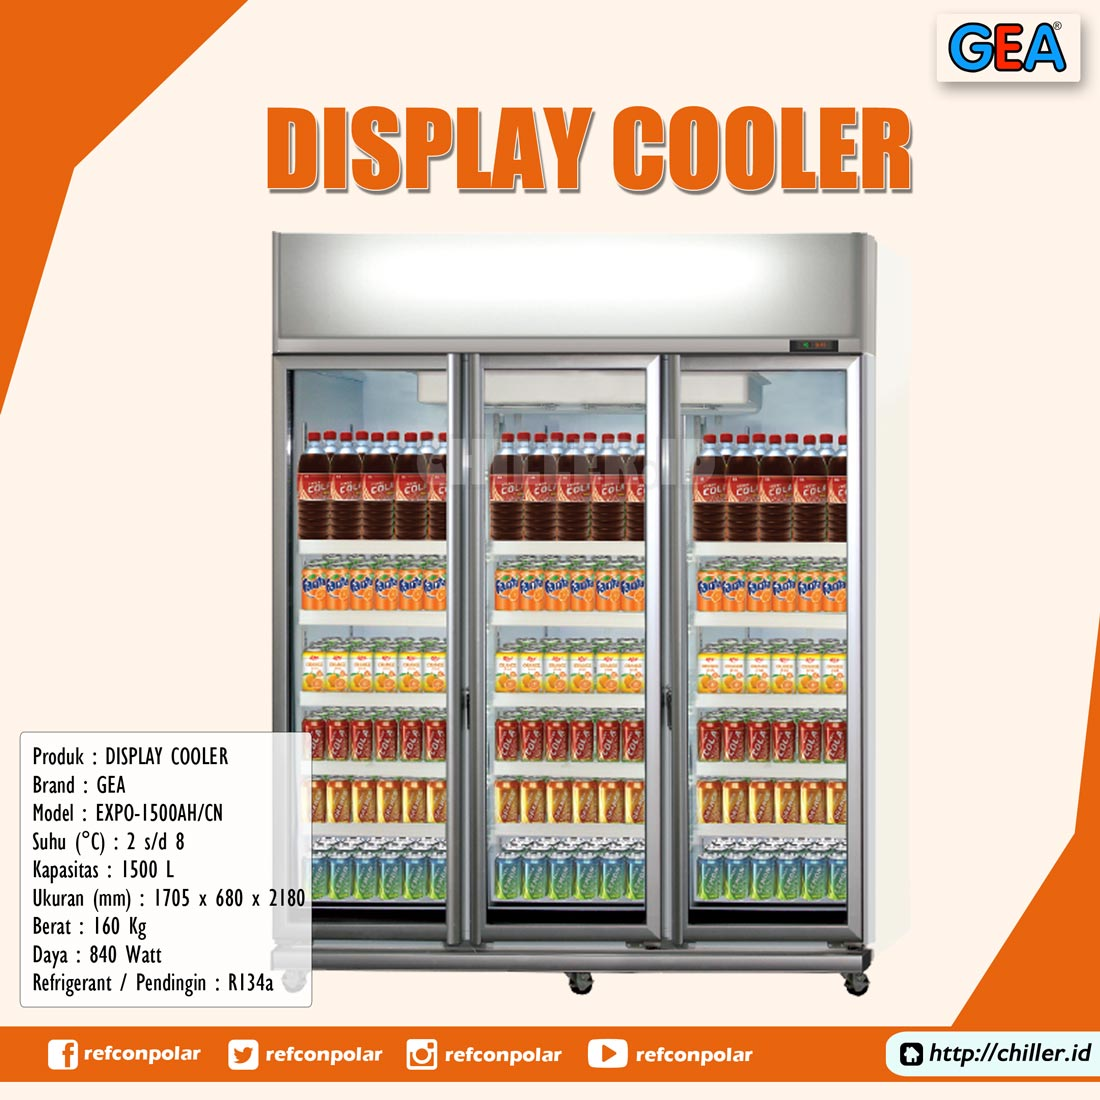 EXPO-1500AH/CN GEA Display Cooler